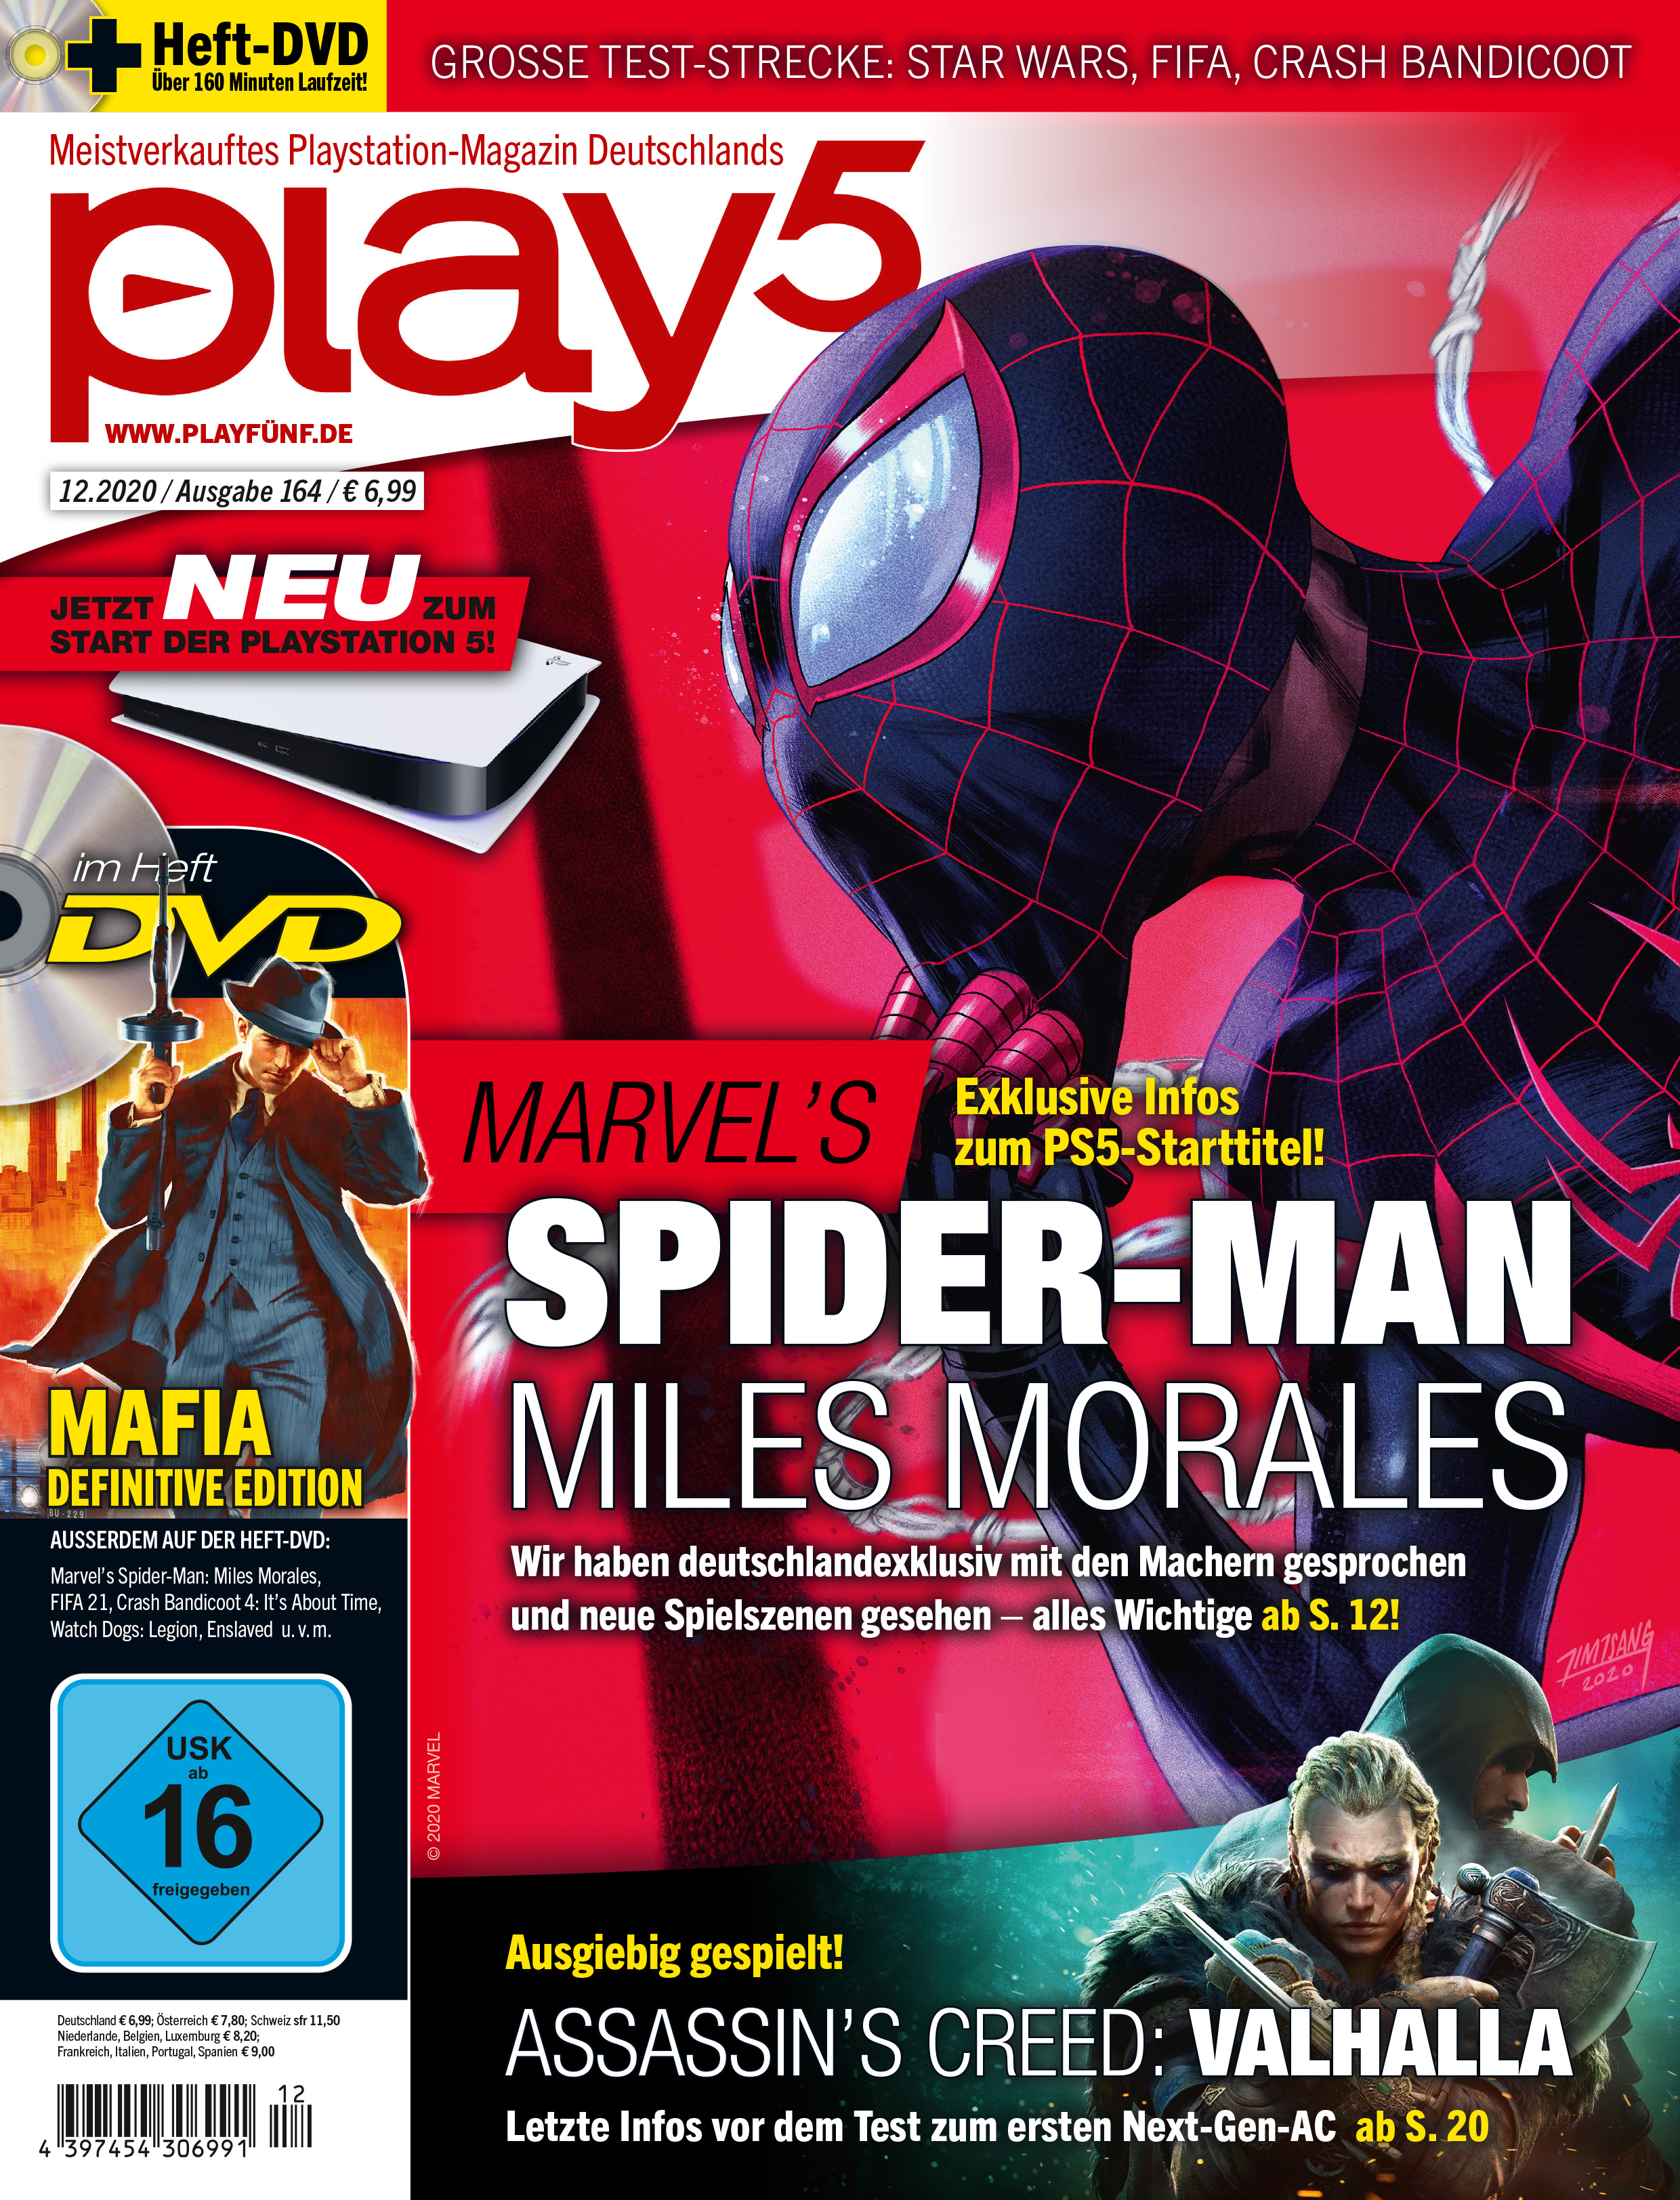 play5 12/20 with cover story about Spider-Man: Miles Morales u. v. m.